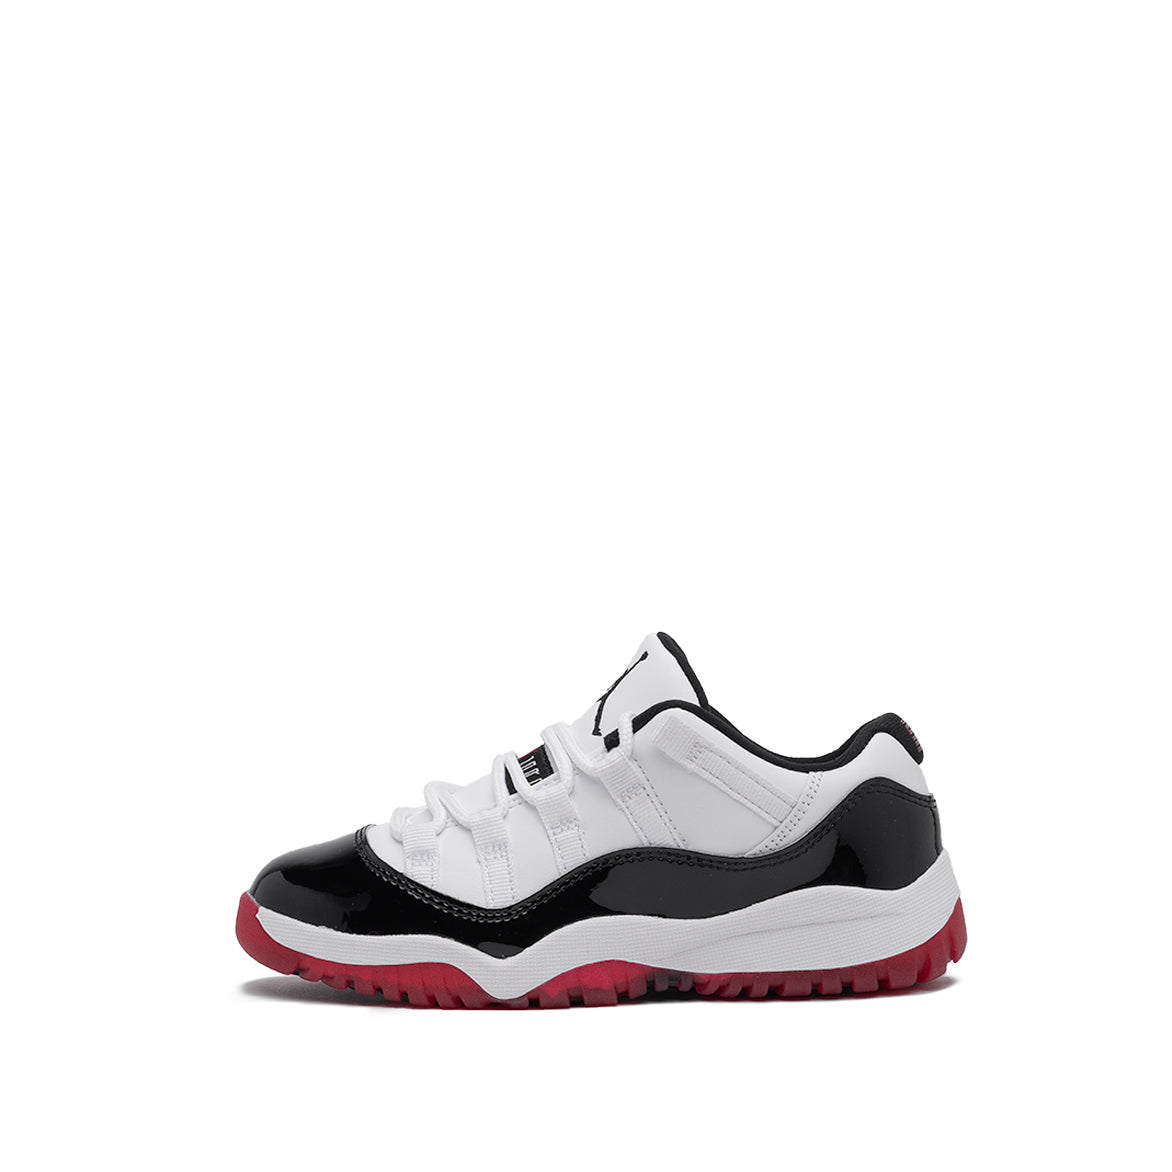 "AIR JORDAN 11 RETRO LOW (PS) ""GYM RED"""